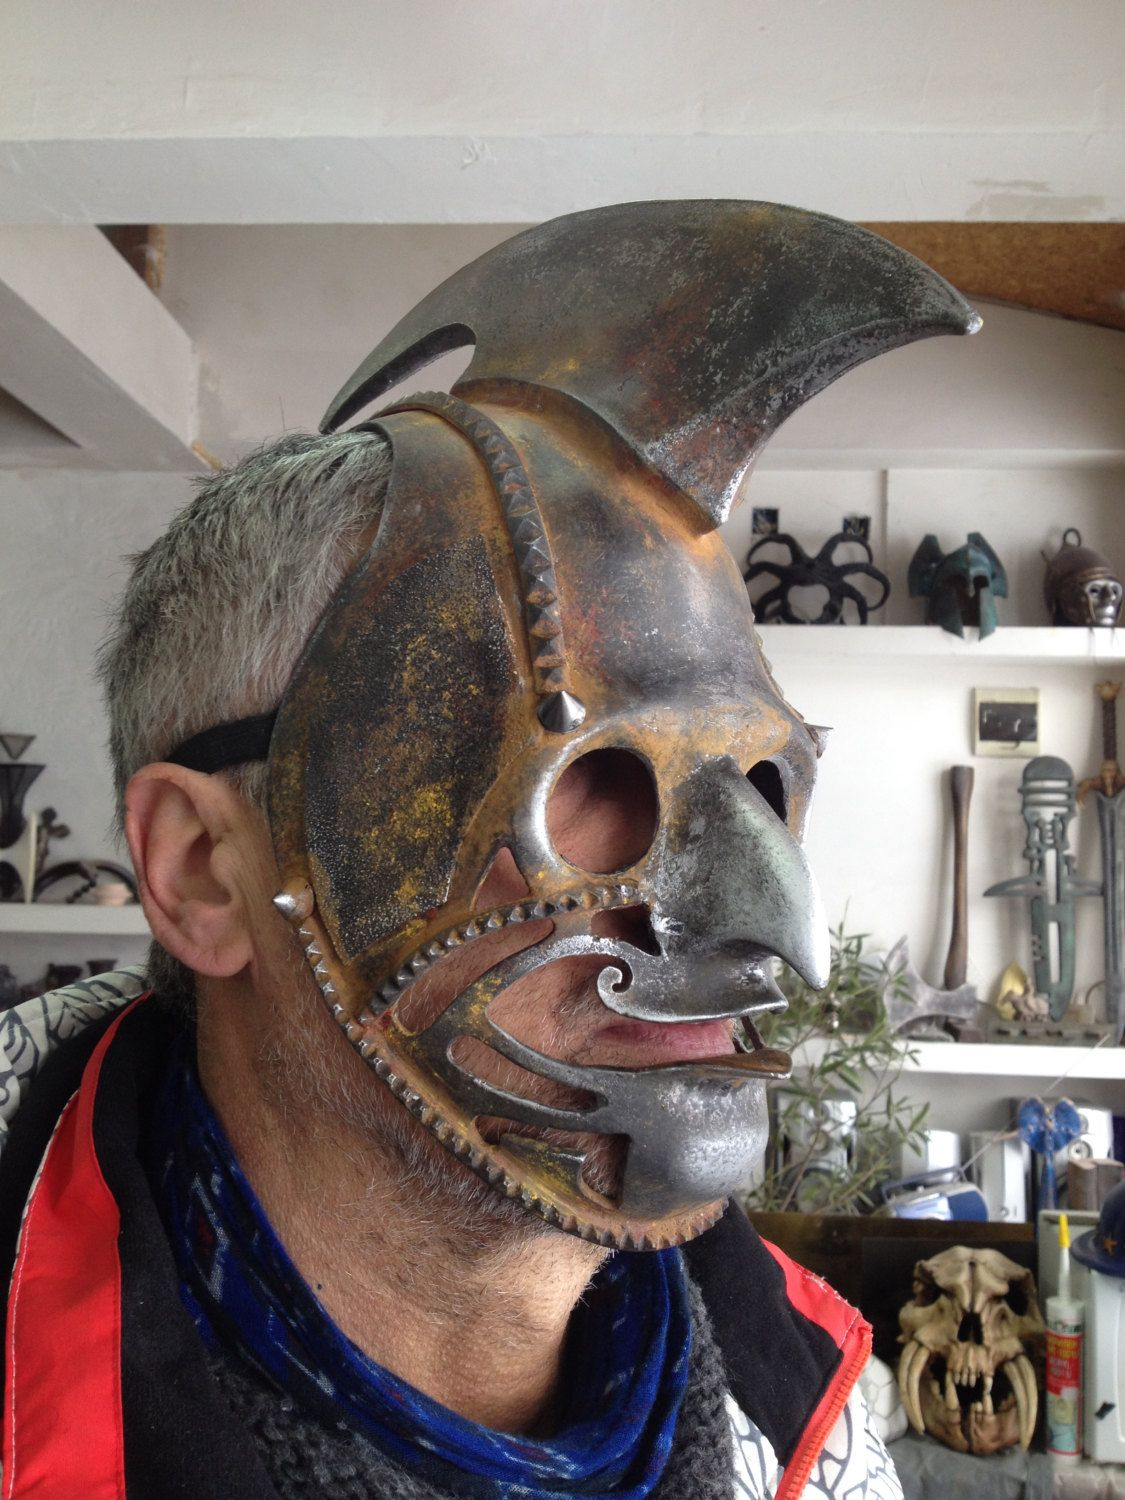 Steampunk Mask, Burning Men Festival Costume Mask Steampunk Helmet ...